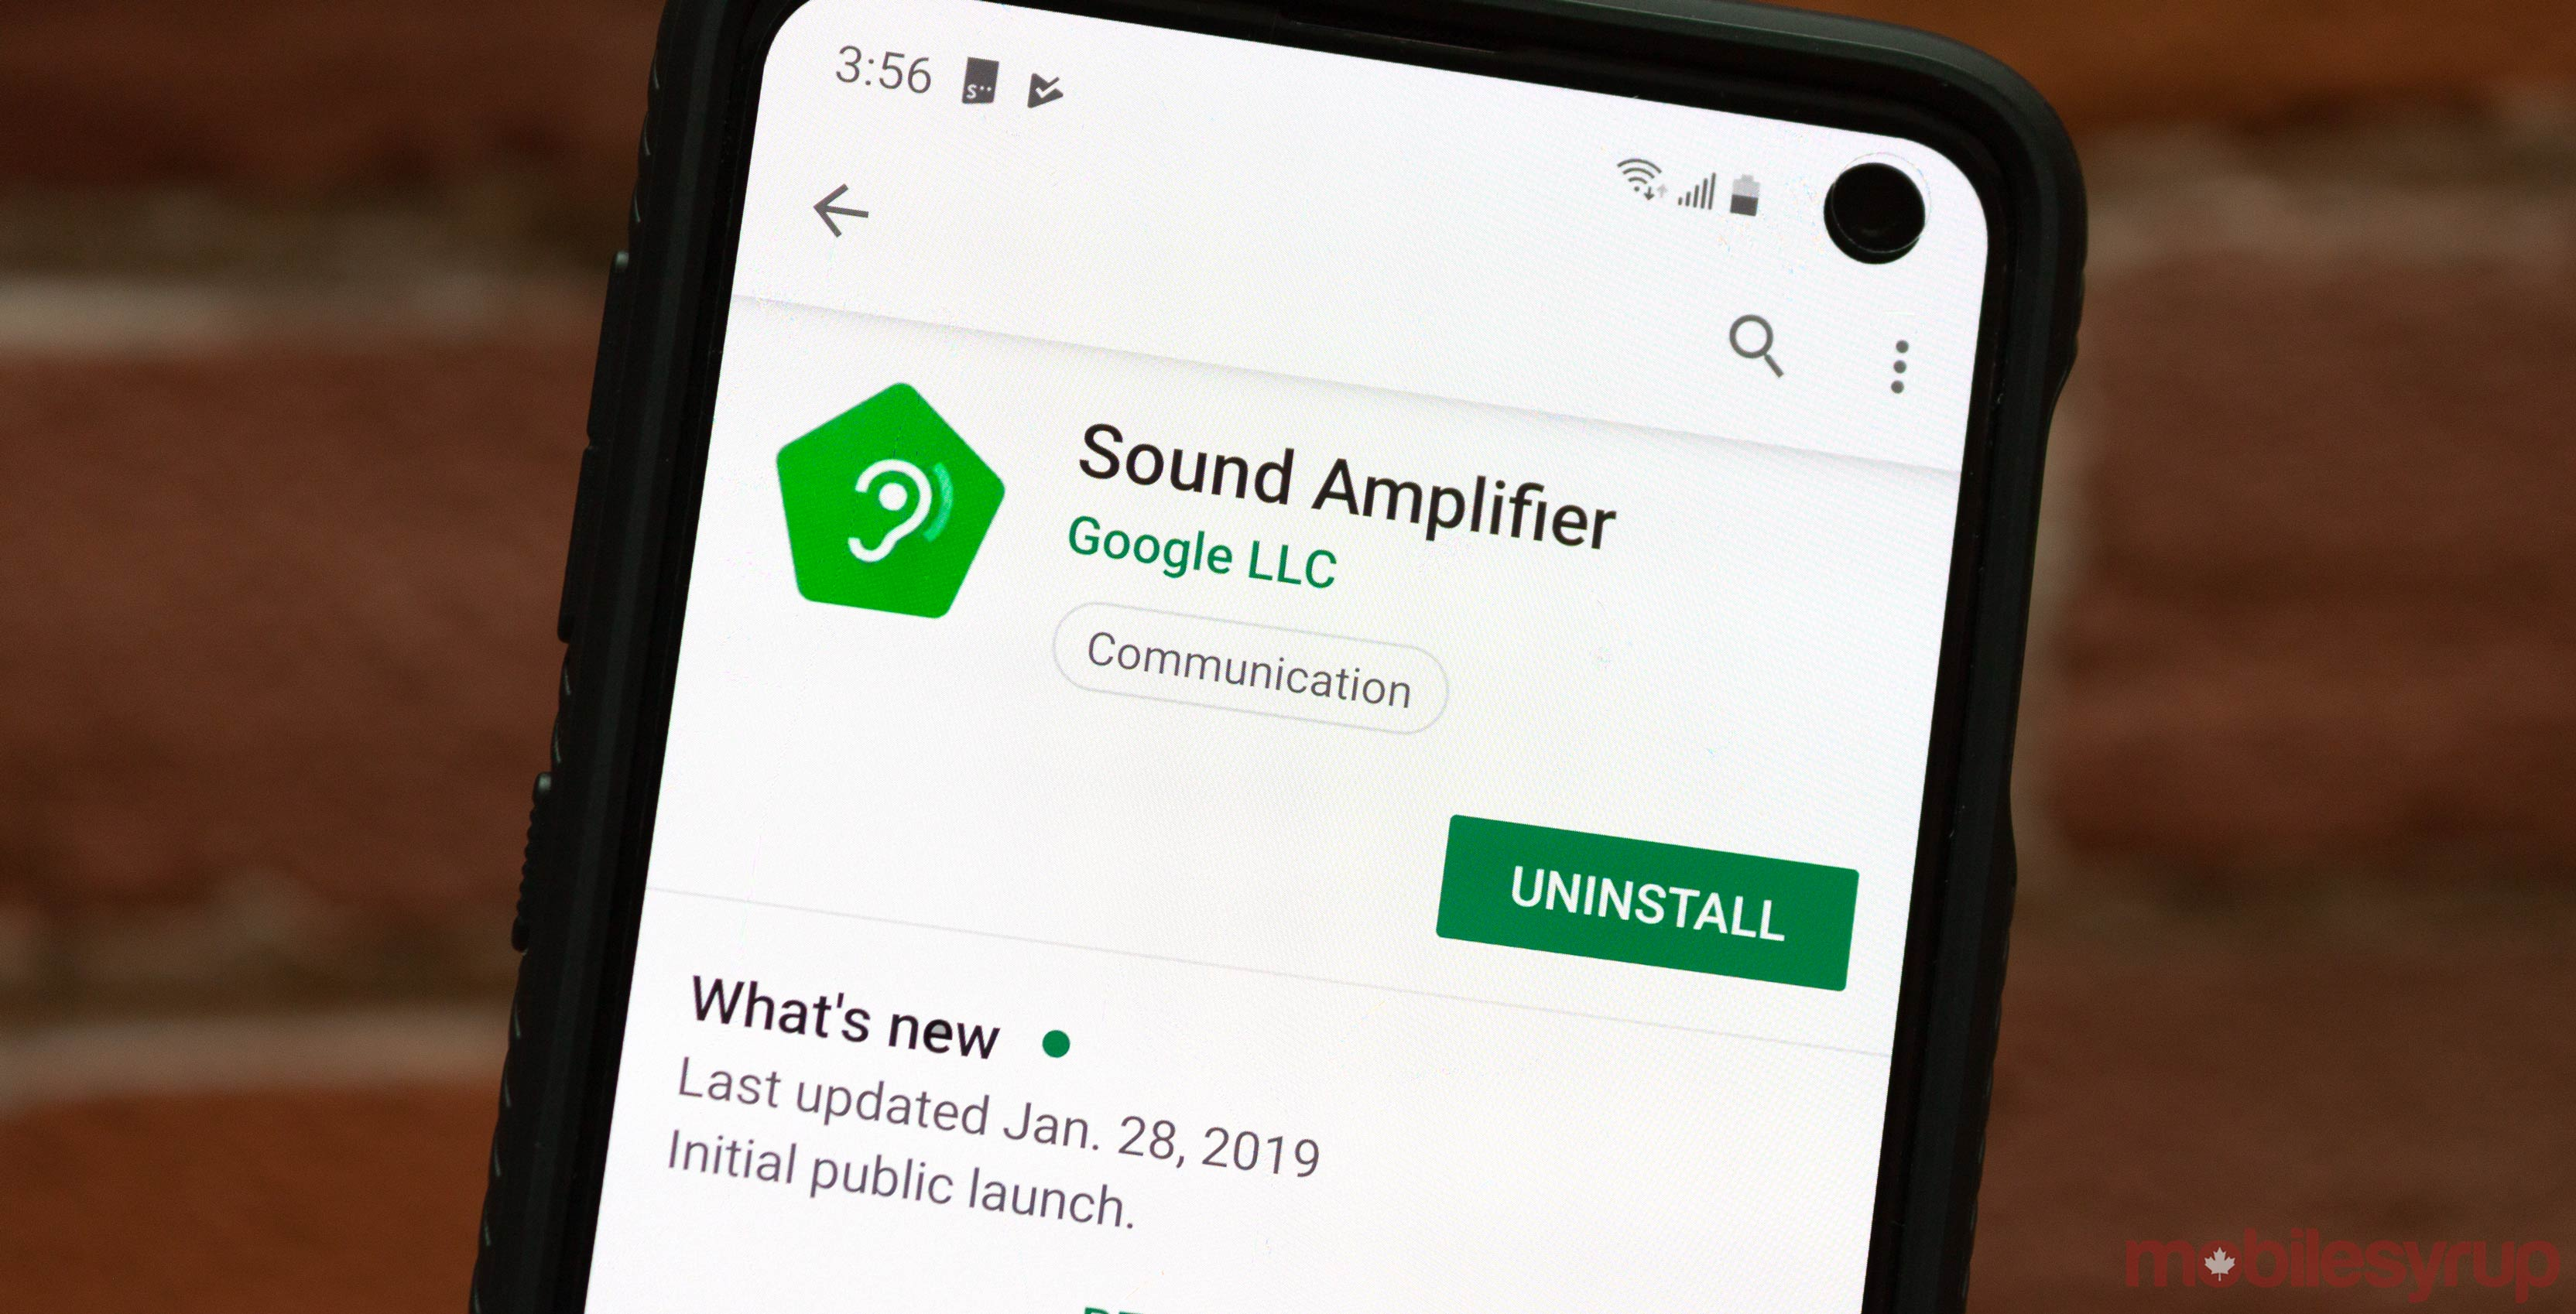 Google's Sound Amplifier gets audio visualisation and cleaner interface